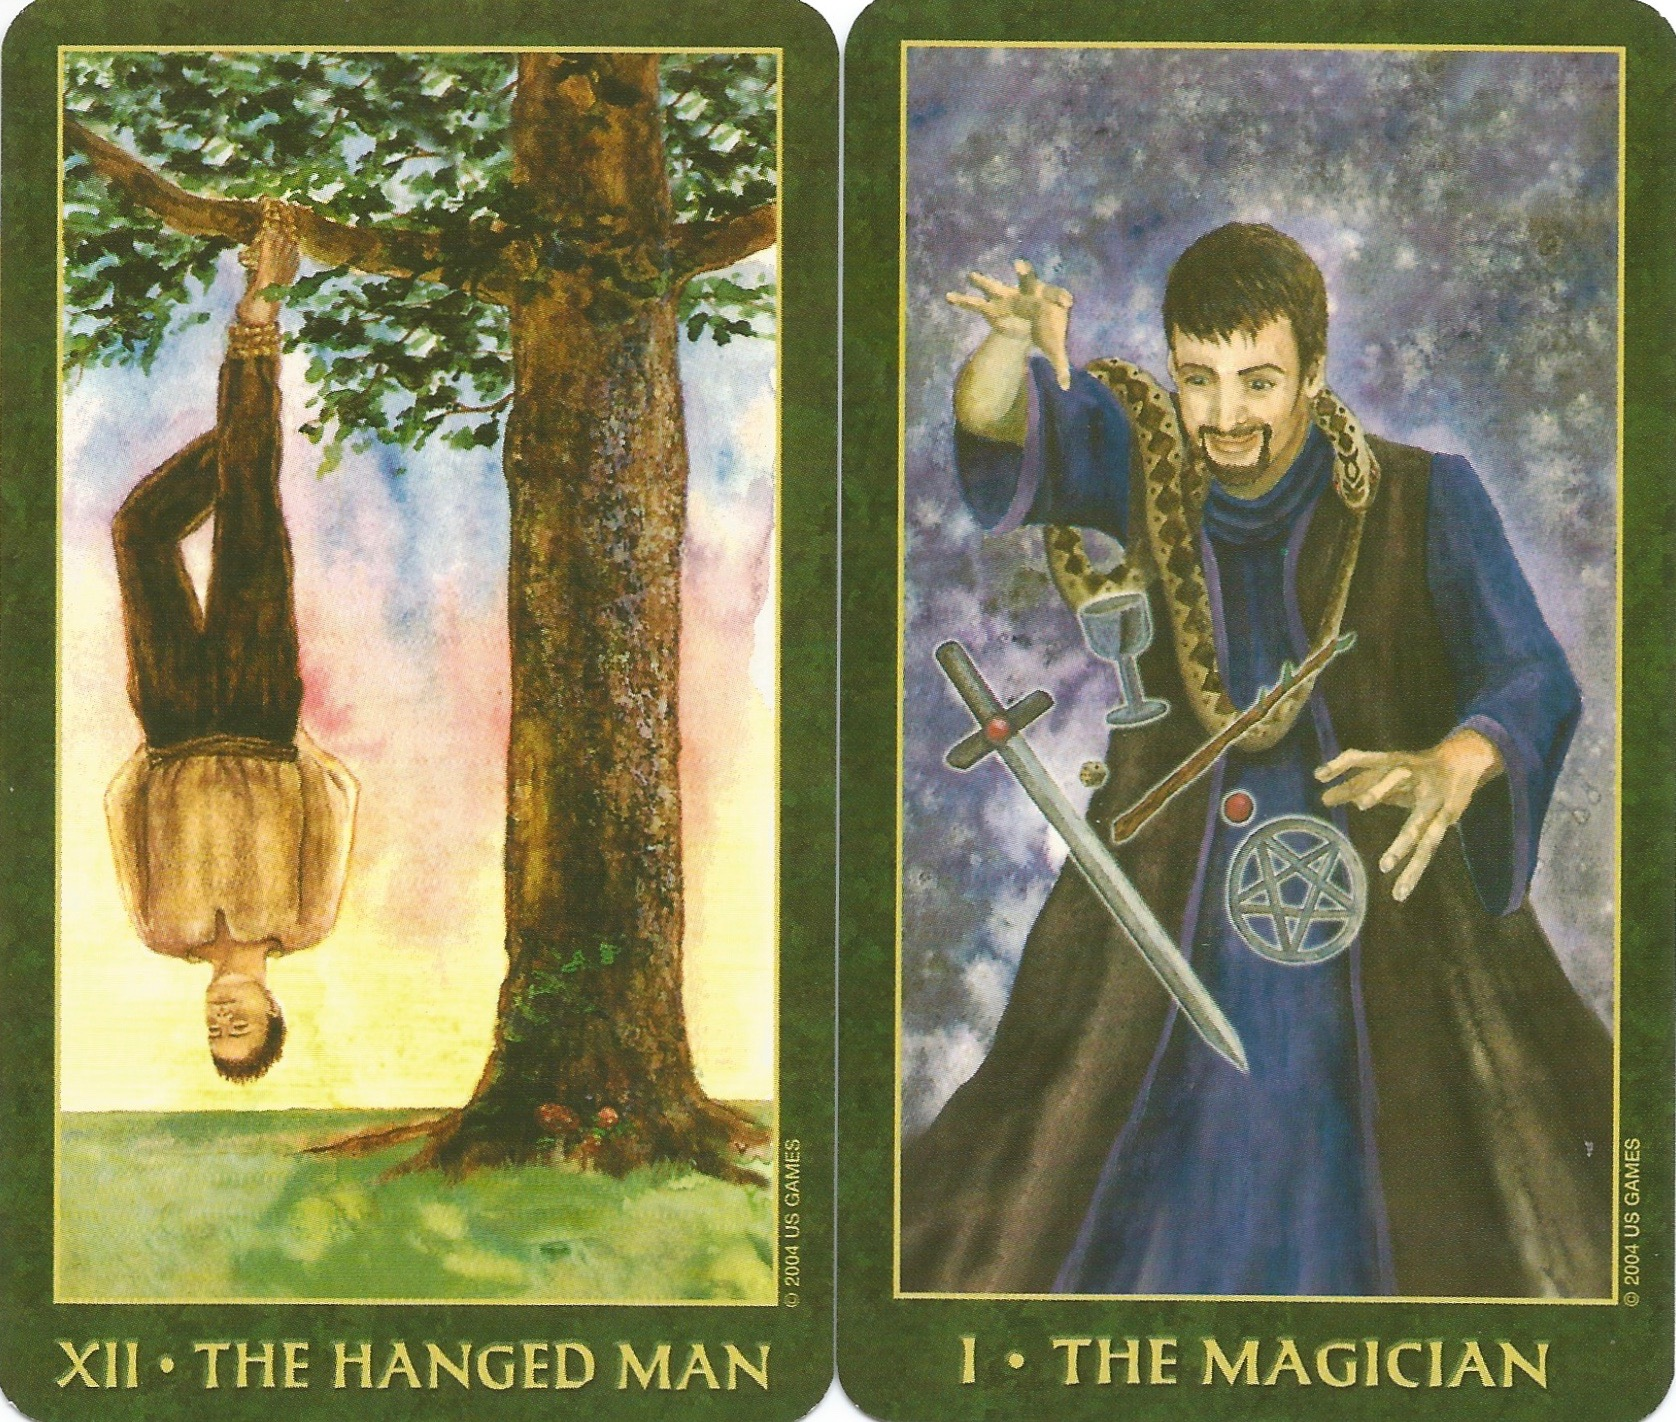 The Hanged Man and the Magician | Tarot ReflectionsAugust 2017